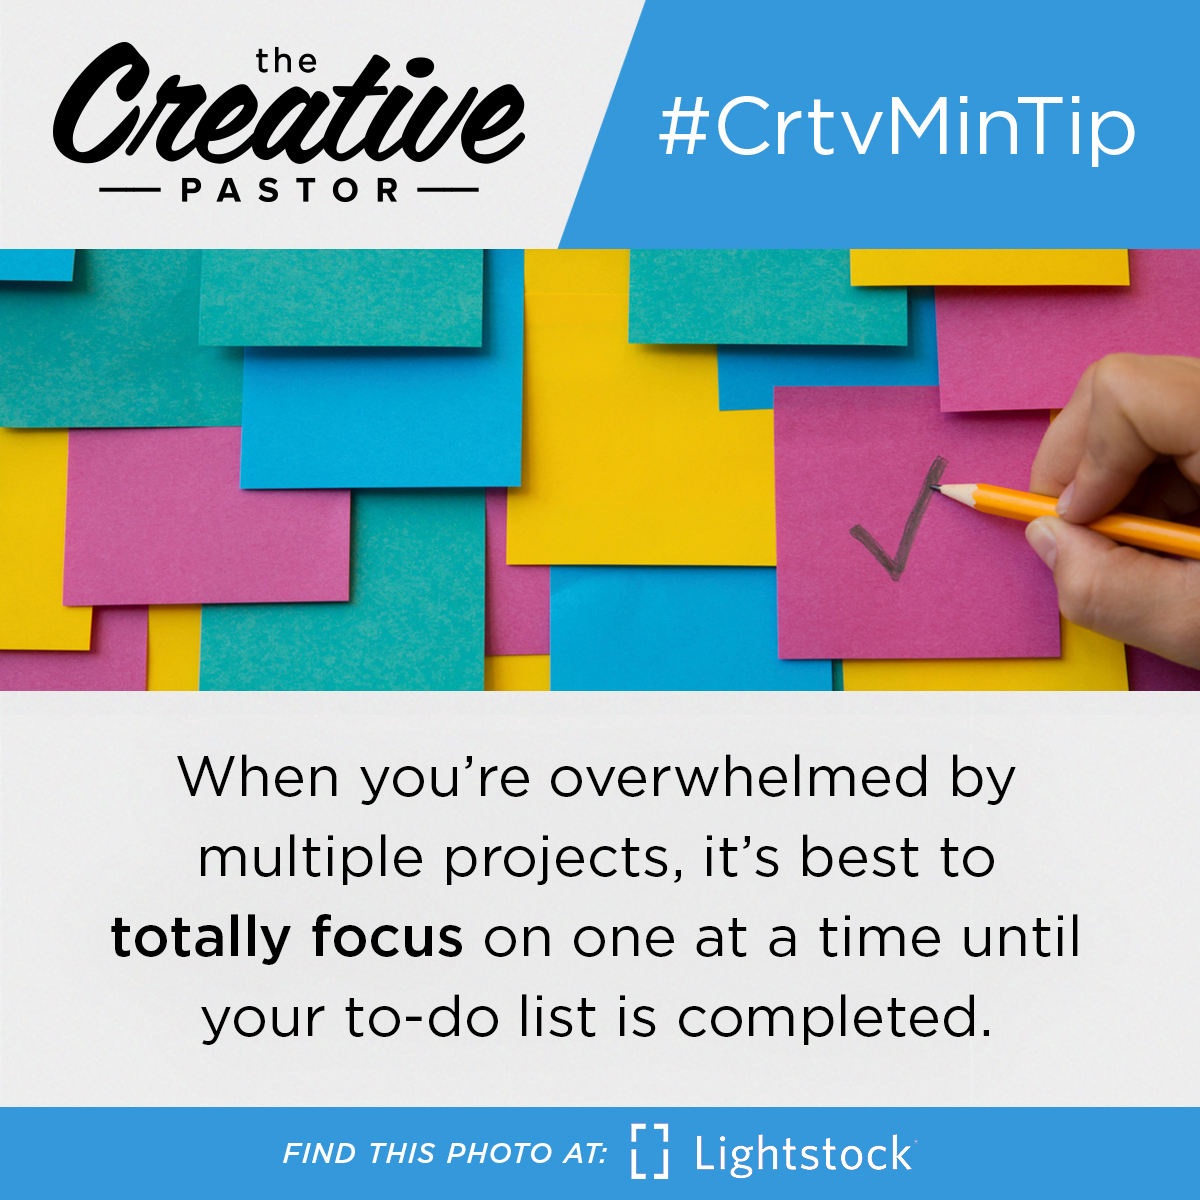 When you're overwhelmed by multiple projects, it's best to totally focus on one at a time until your to-do list is completed.